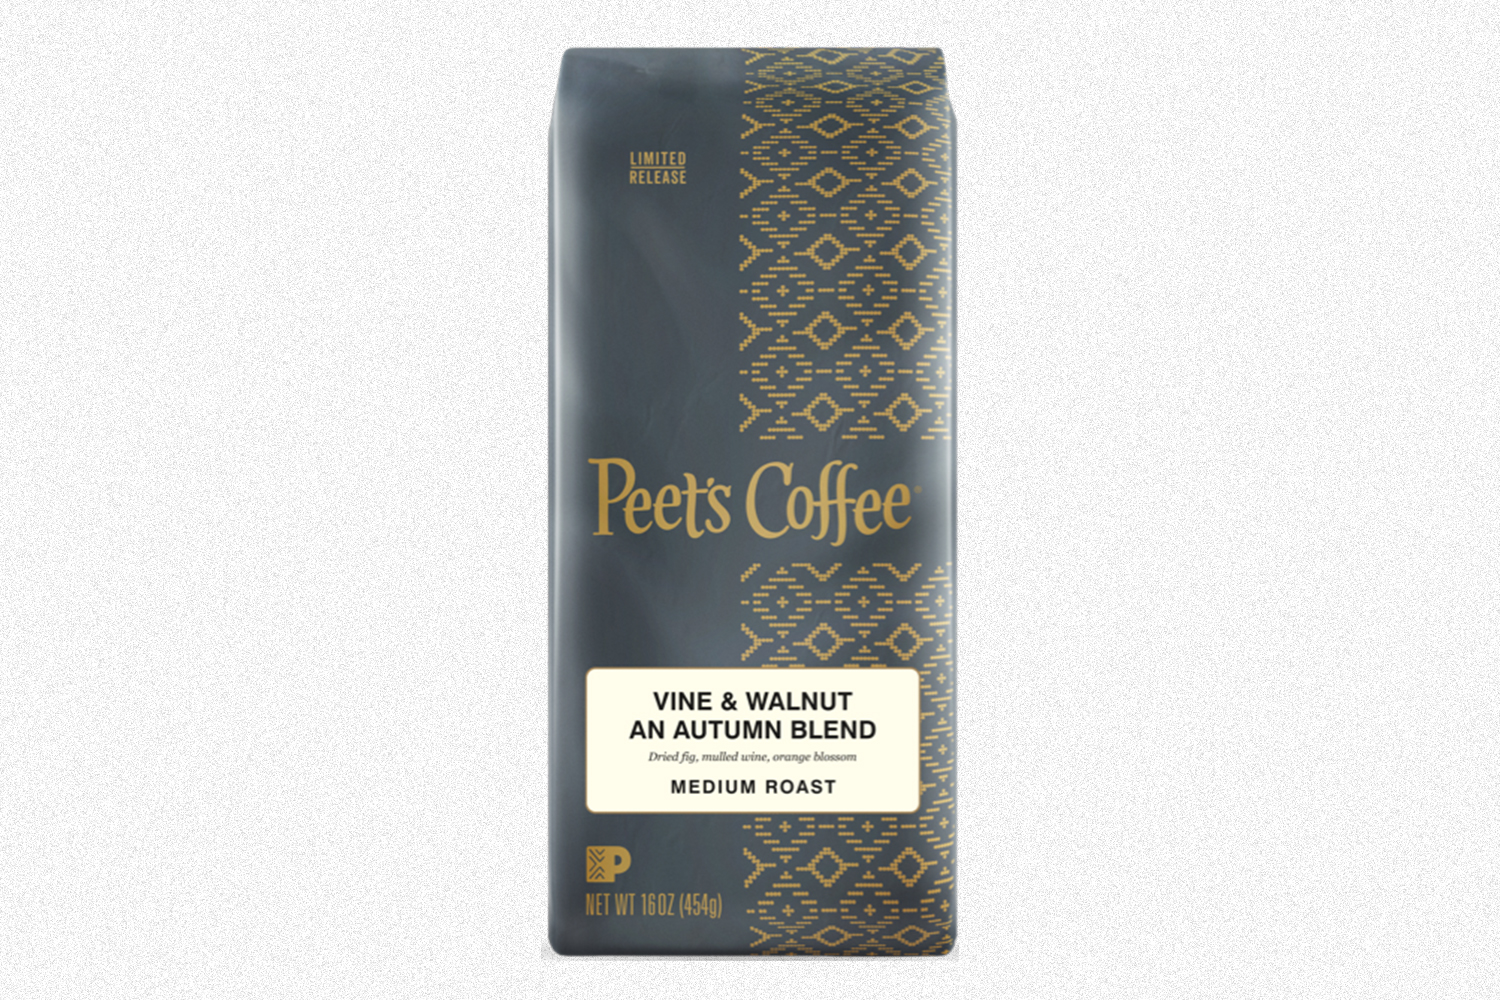 Peet's Coffee Vine & Walnut Autumn Blend coffee beans